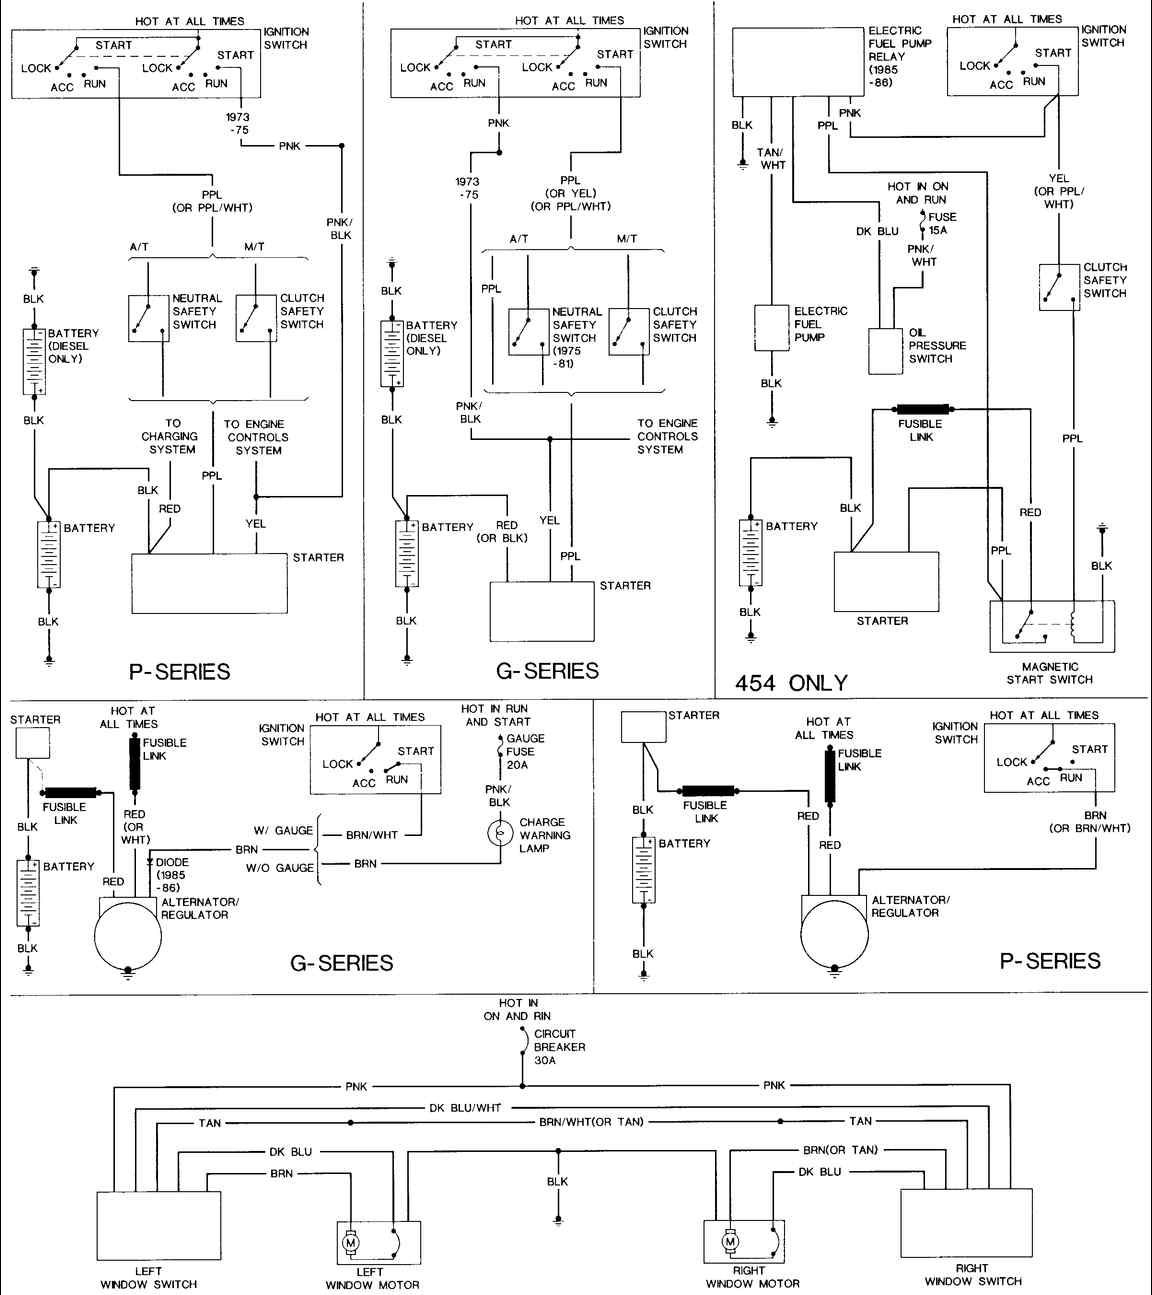 0c73623a181dc376dbb4777e2029d285 85 chevy truck wiring diagram 85 chevy van the steering column rat rod wiring diagram at reclaimingppi.co